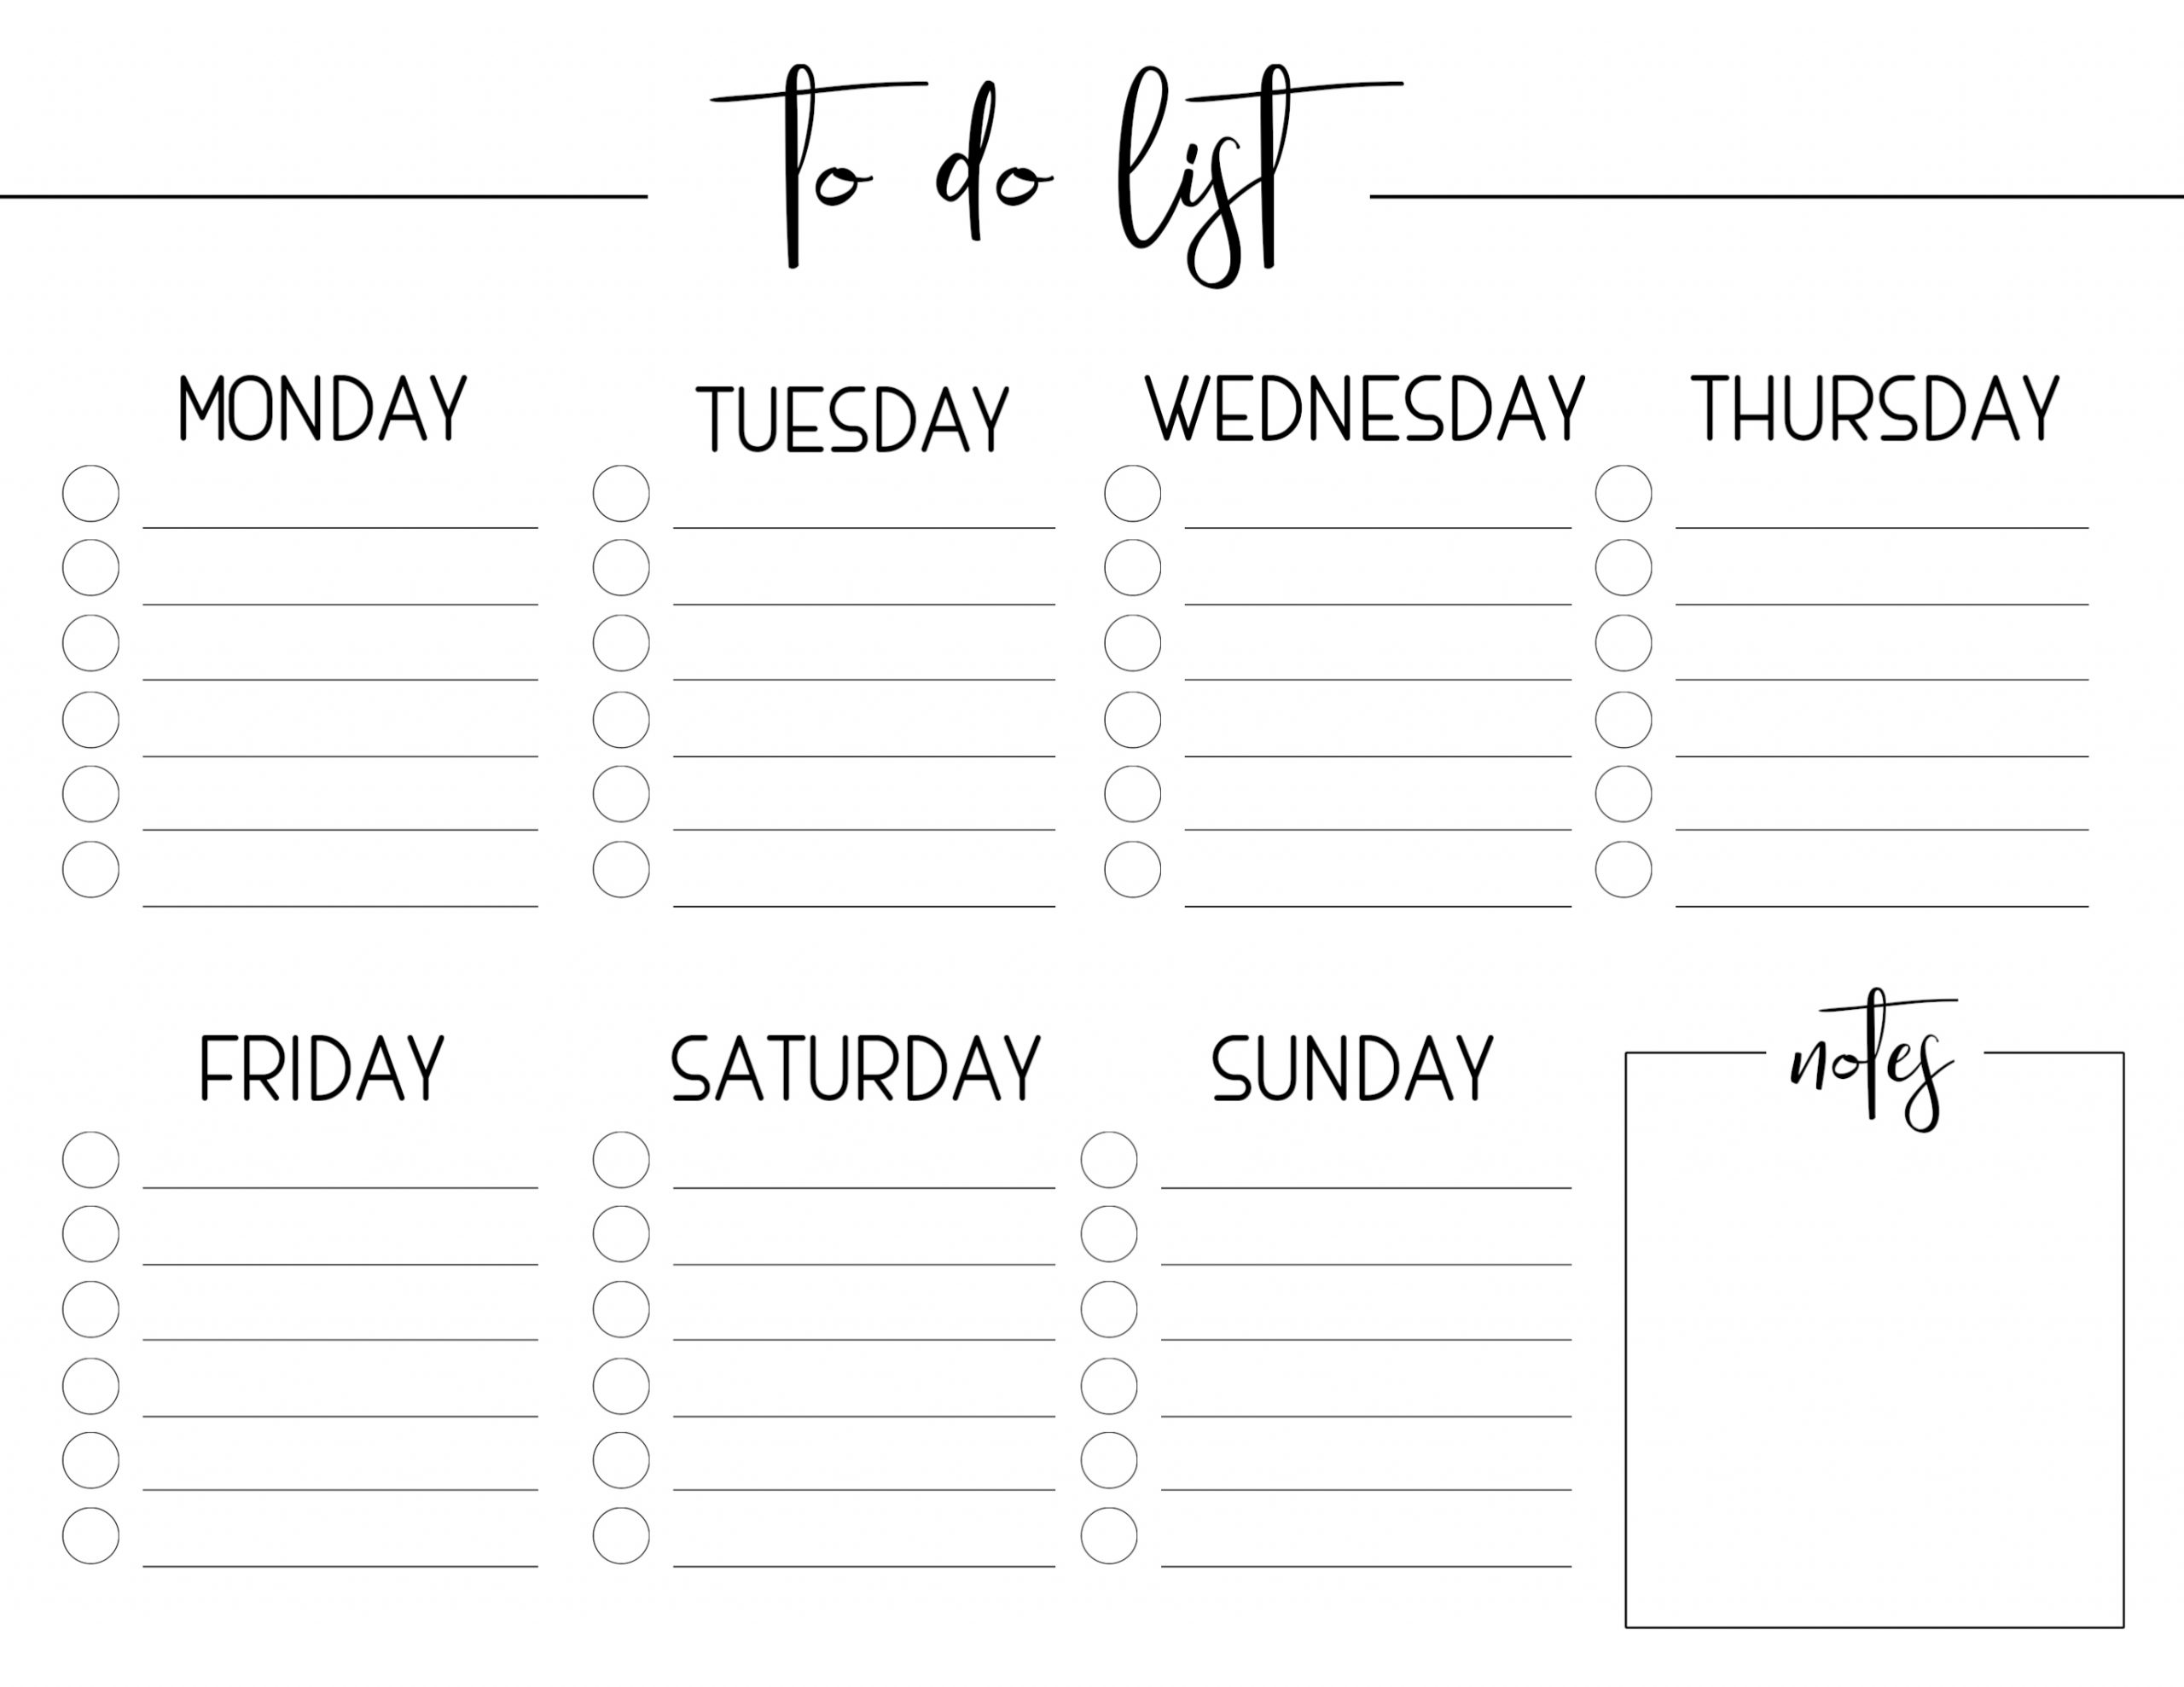 Get Monday – Friday To Do List